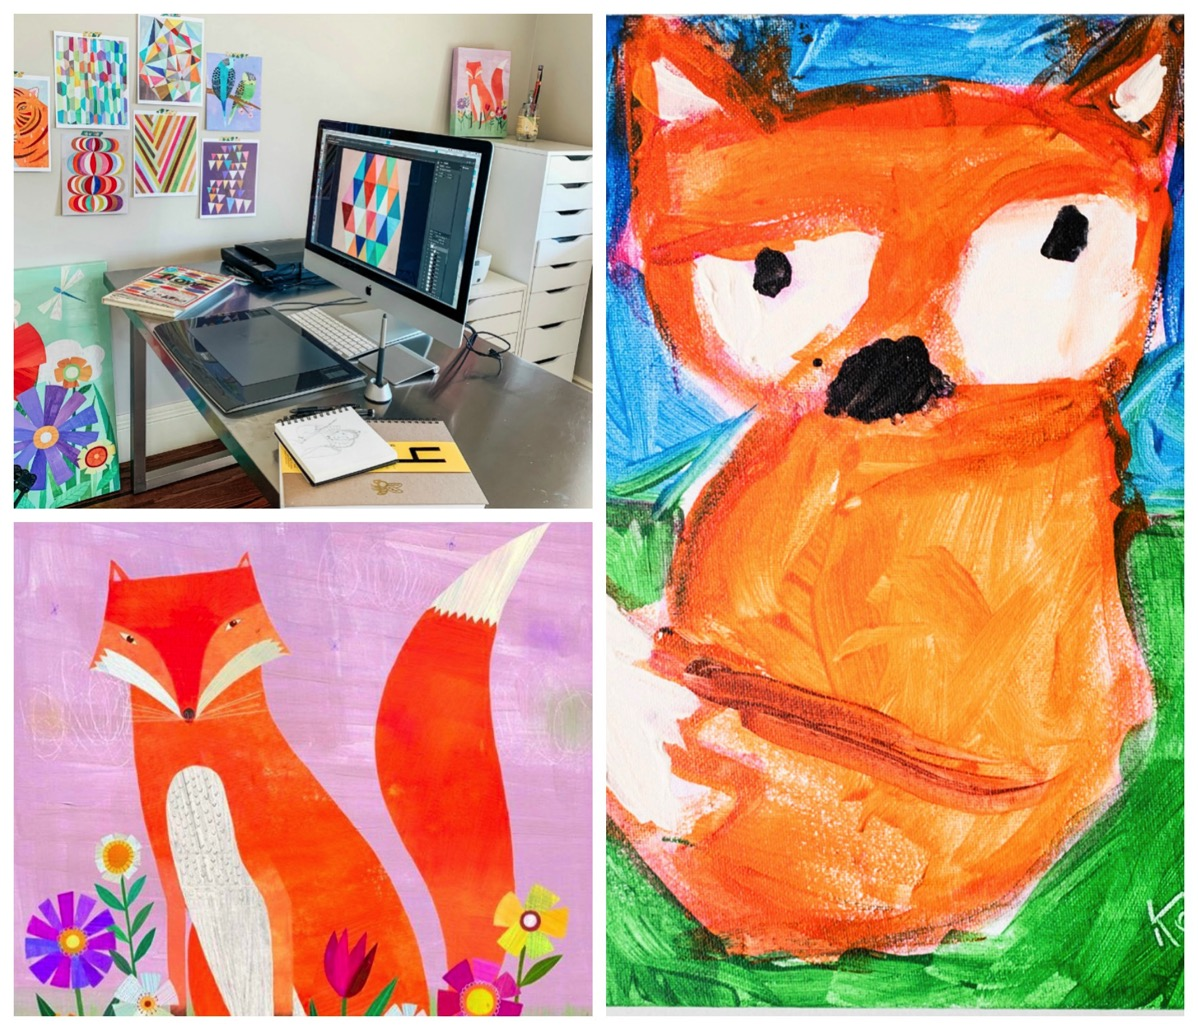 Studio of melanie mikecz colorful kids art for home